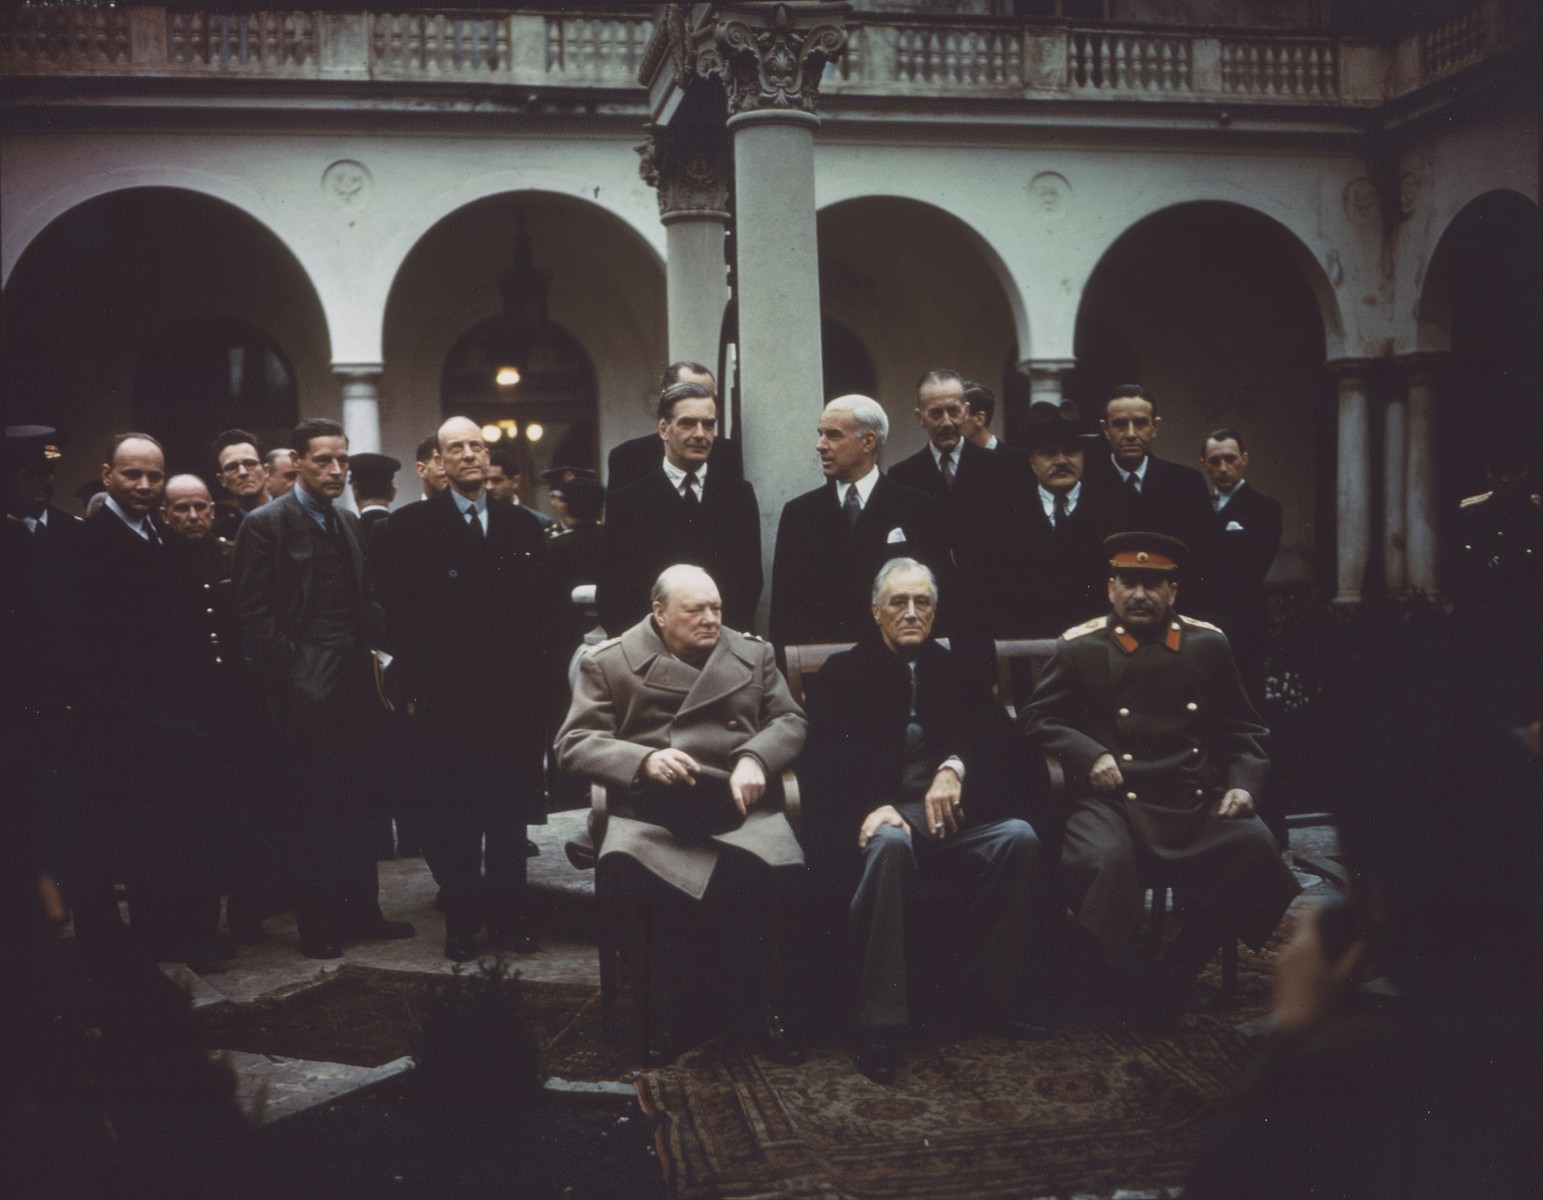 British Prime Minister Winston Churchill, U.S. President Franklin D. Roosevelt, and Soviet Premier Joseph Stalin pose outside on the grounds of the Livadia Palace during the Yalta Conference.